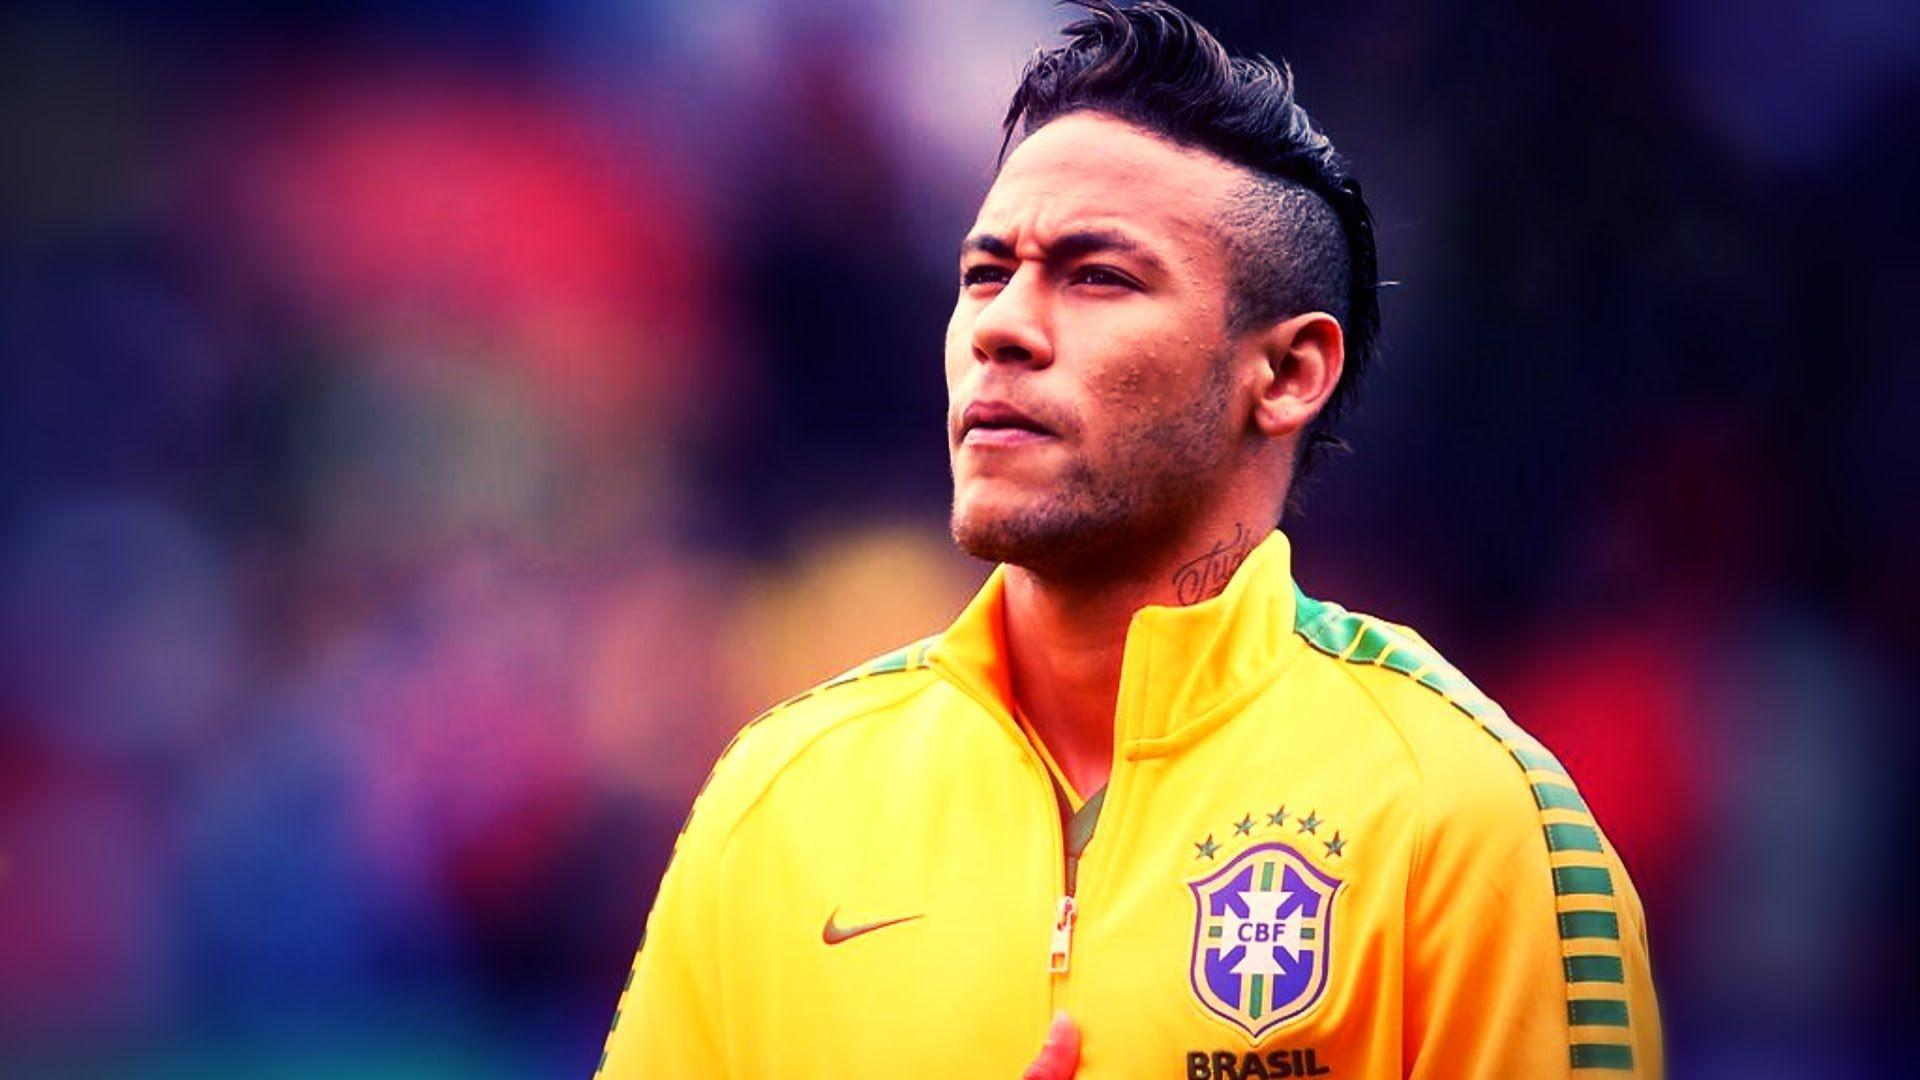 Neymar Jr HD Image - New HD Images